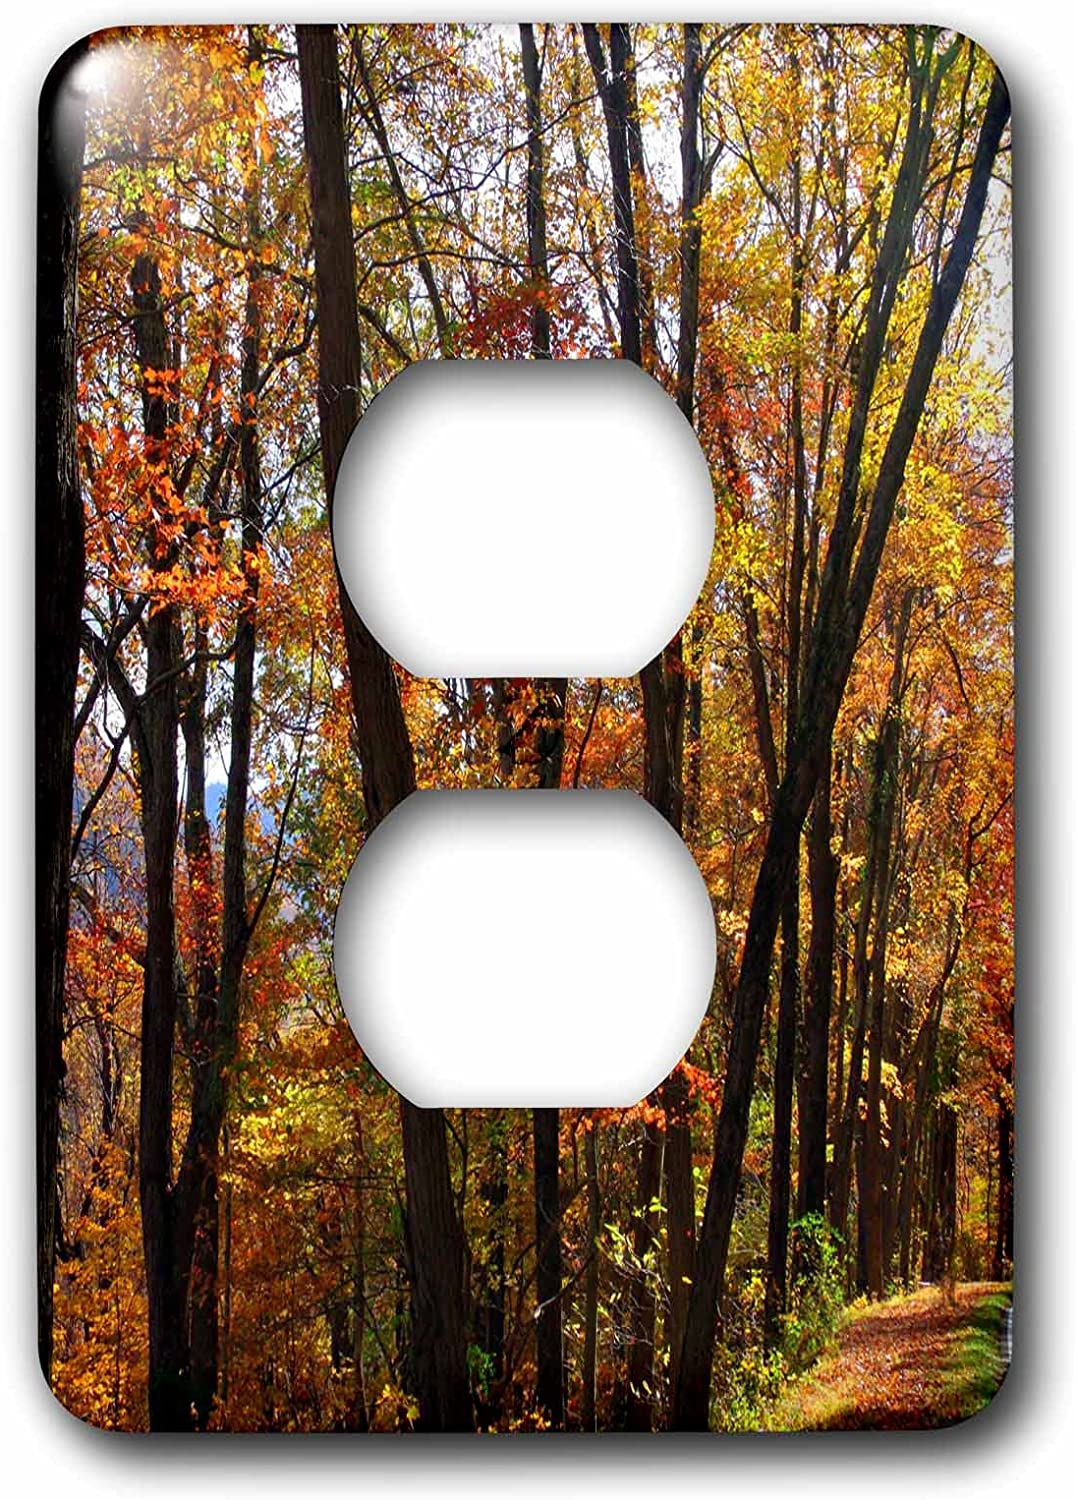 3drose Lsp 153675 6 Autumn Trees Dark Tree Trunks Highlighted By